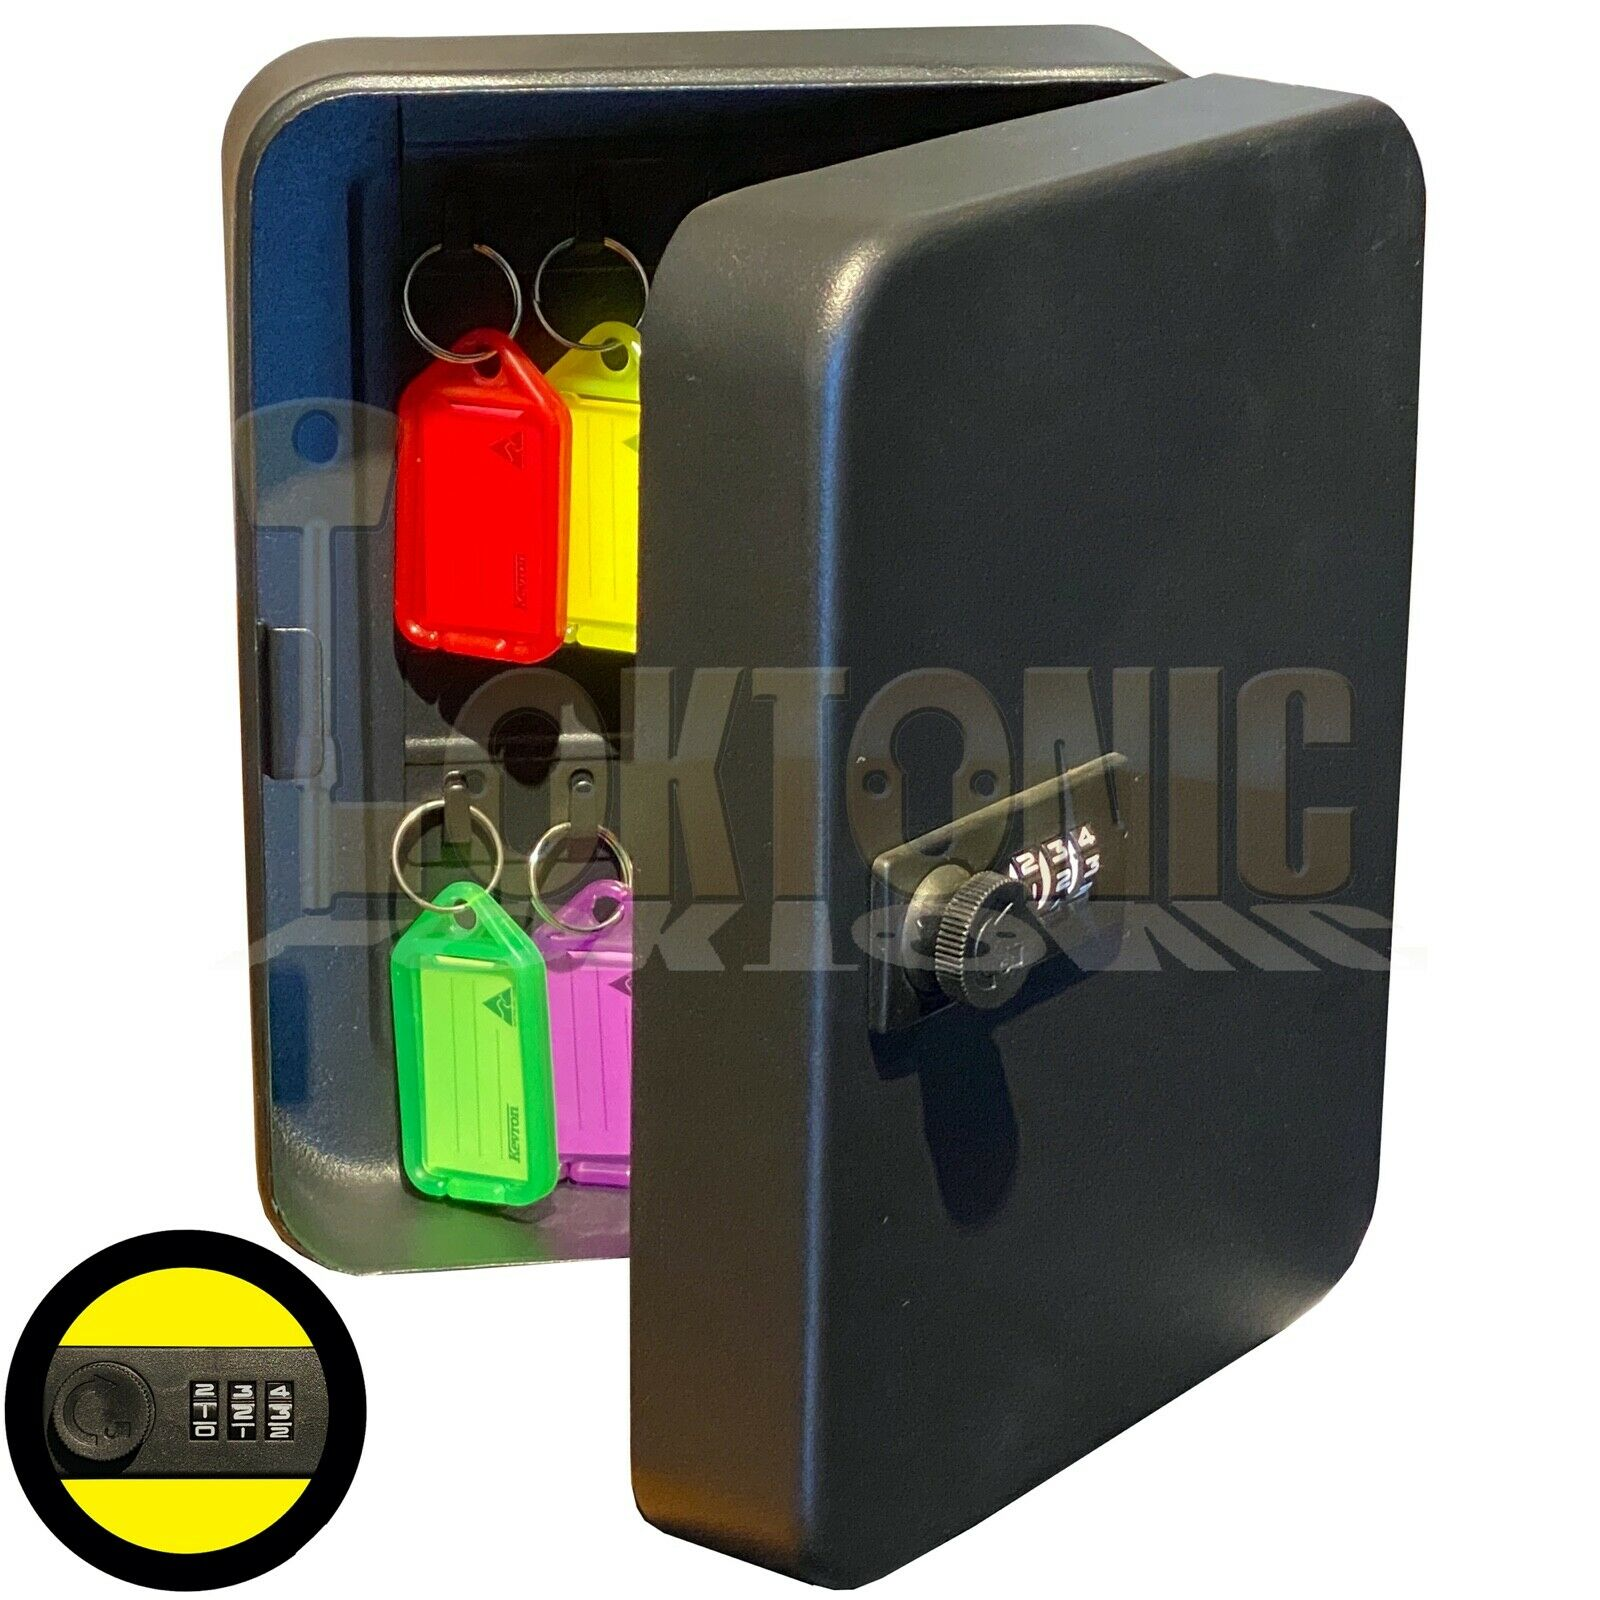 20 Hooks Wall Mounted 3 Digit Combination Lock Key Safe Storage Box Cabinet